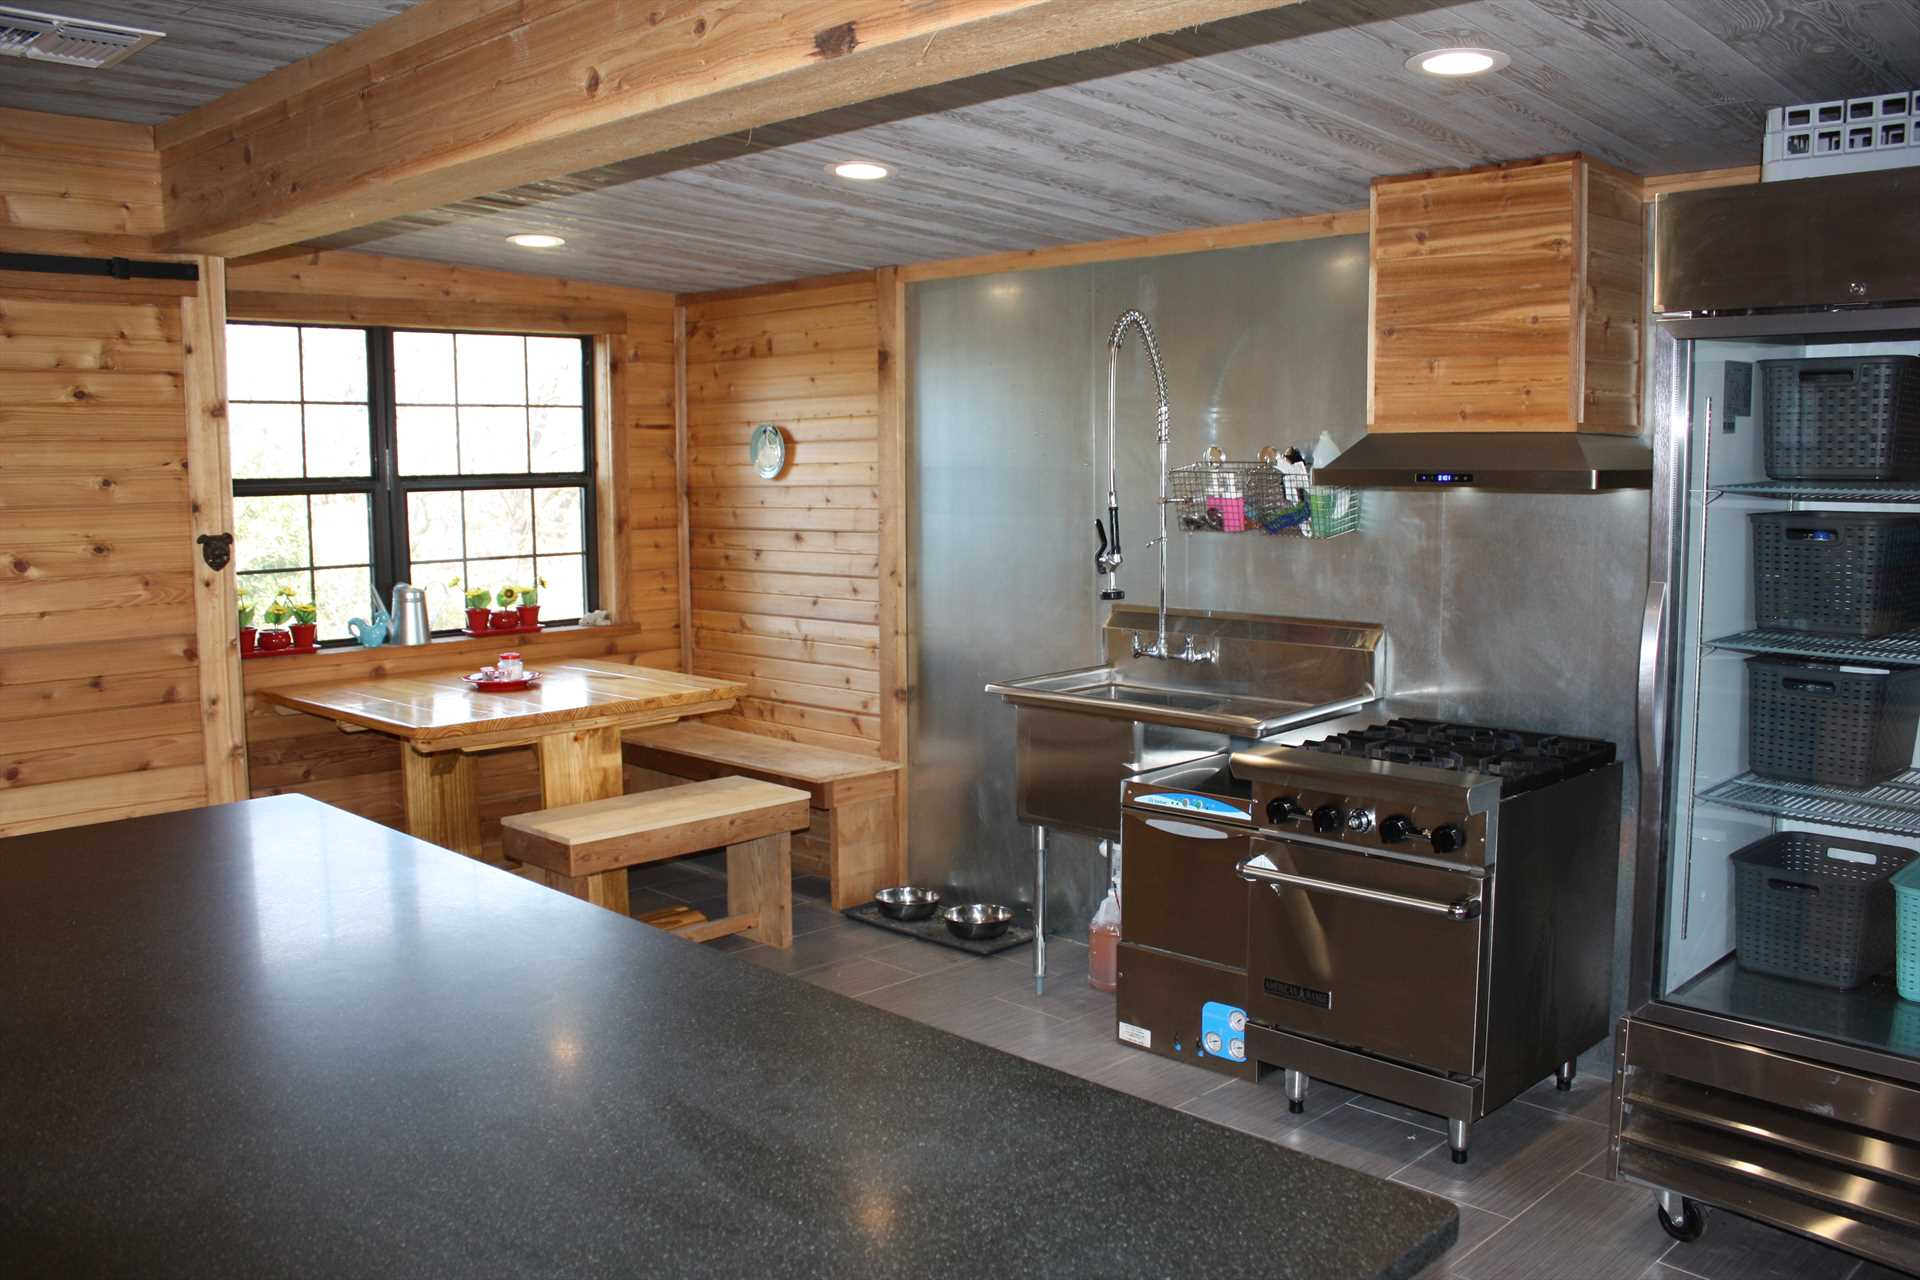 The kitchen is decked out with modern appliances in plenty of space!